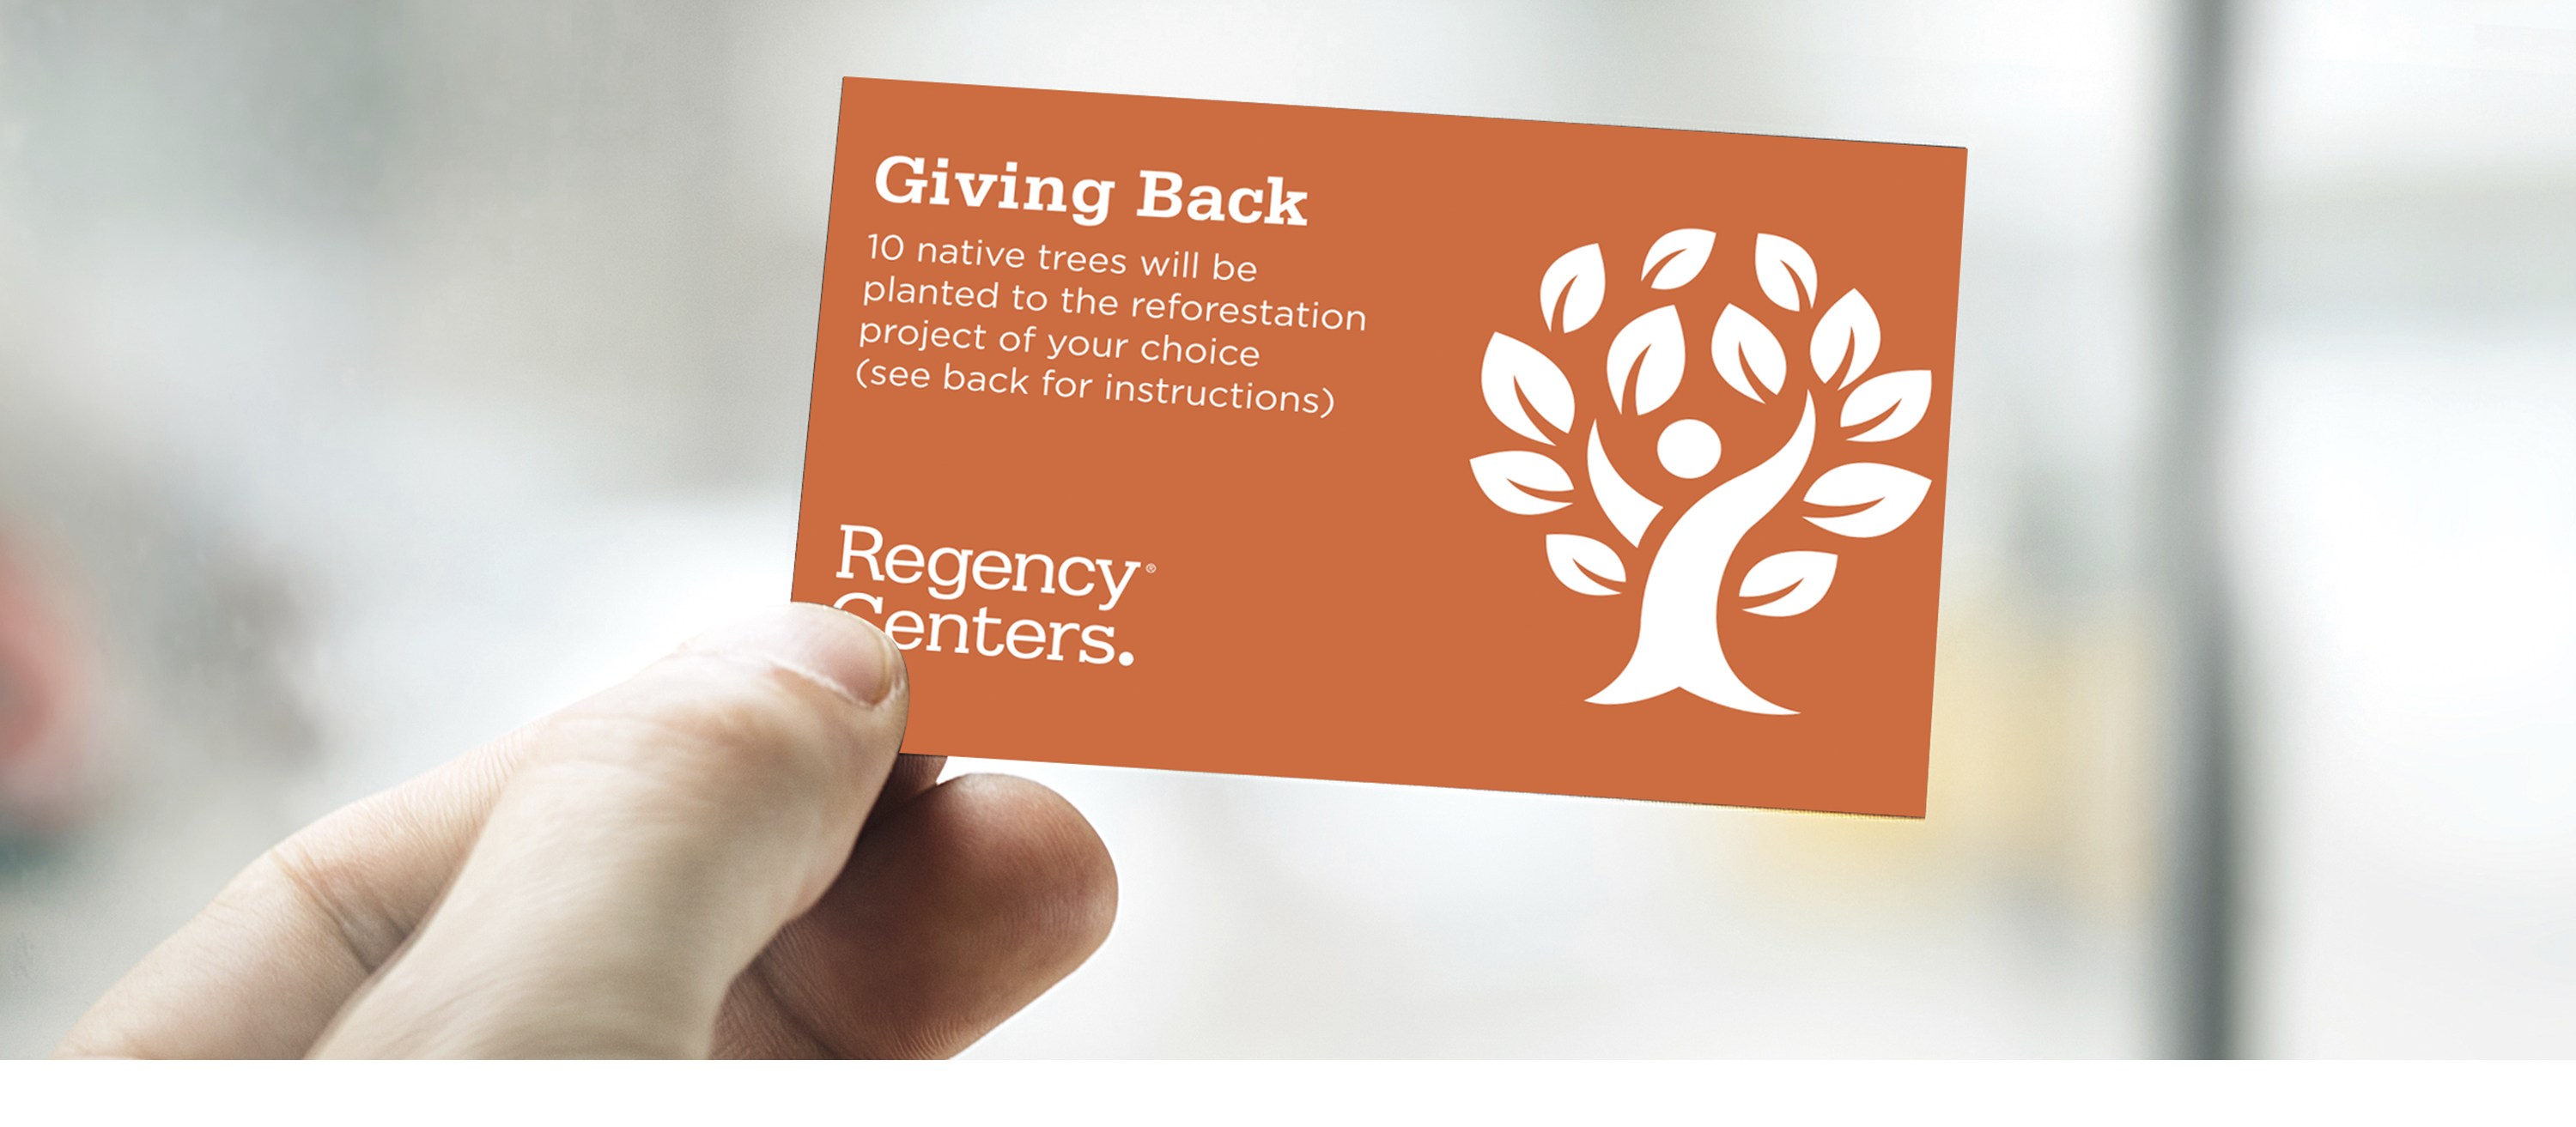 Image of hand holding card with text printed on it: Giving Back. 10 Native trees will be planted to the reforestation project of your choice (see back for instructions). Regency Centers